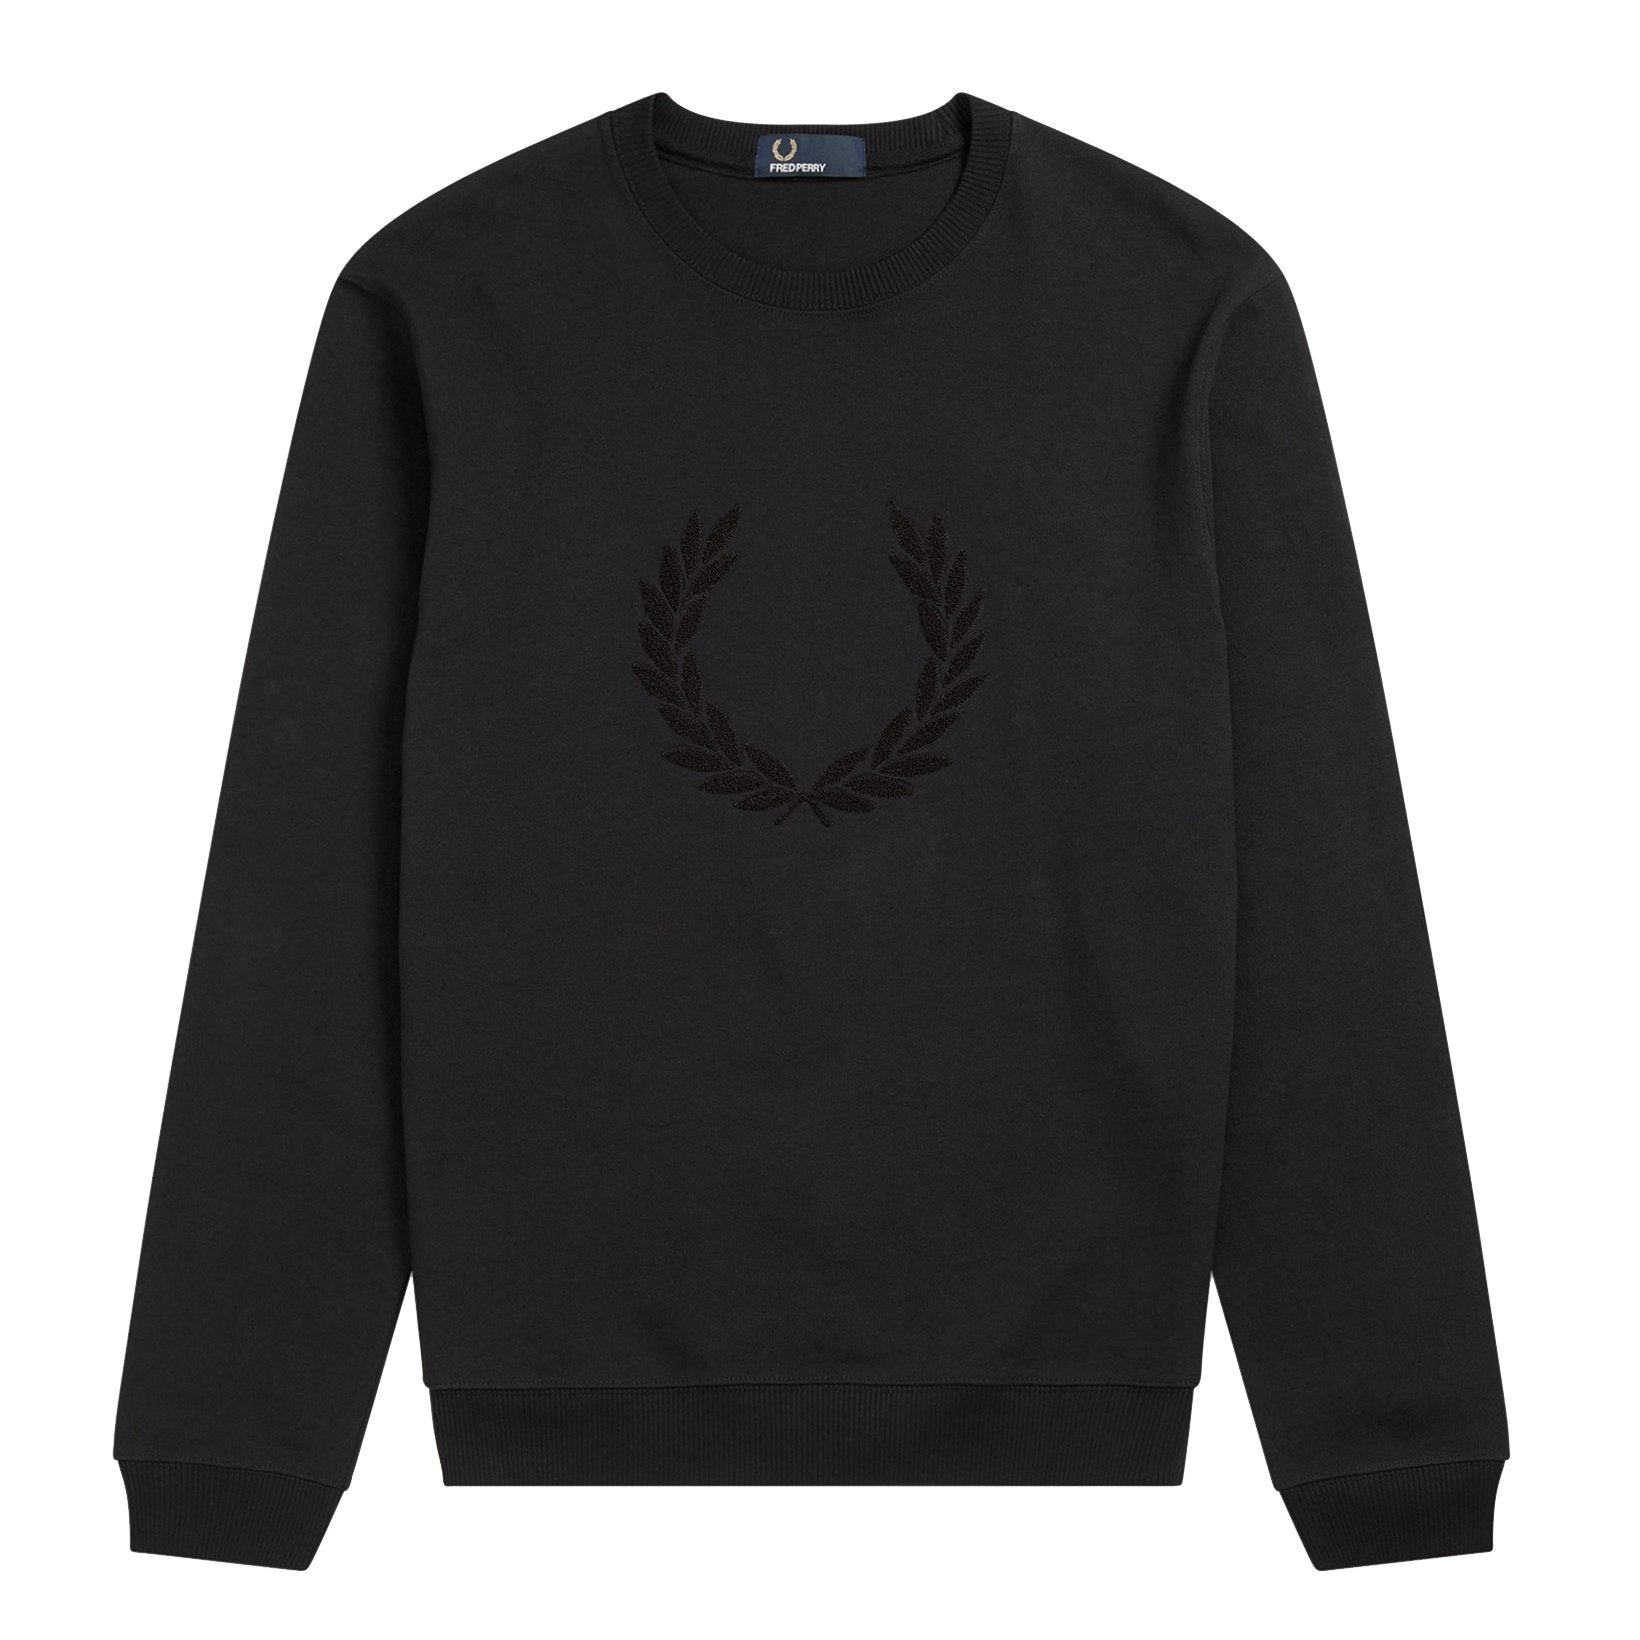 Fred Perry Sweatshirt mit Laurel Wreath